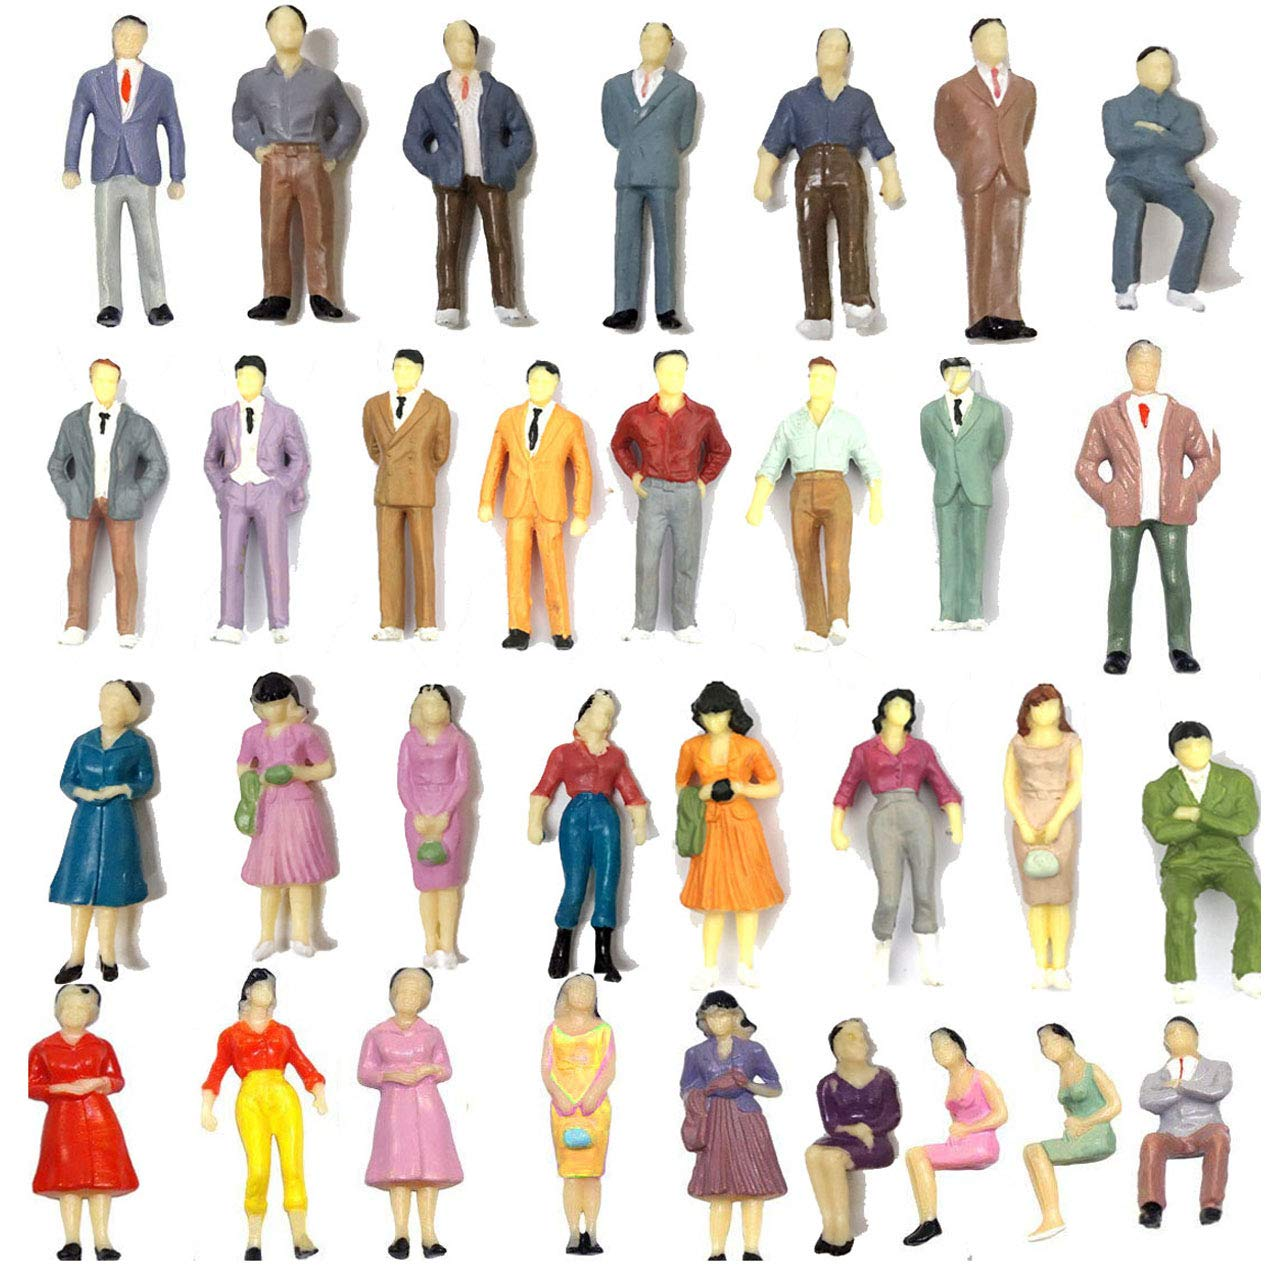 Gdaya 100PCs Model Trains Architectural 1:50 Scale Painted Figures O Scale Sitting and Standing People for Miniature Scenes